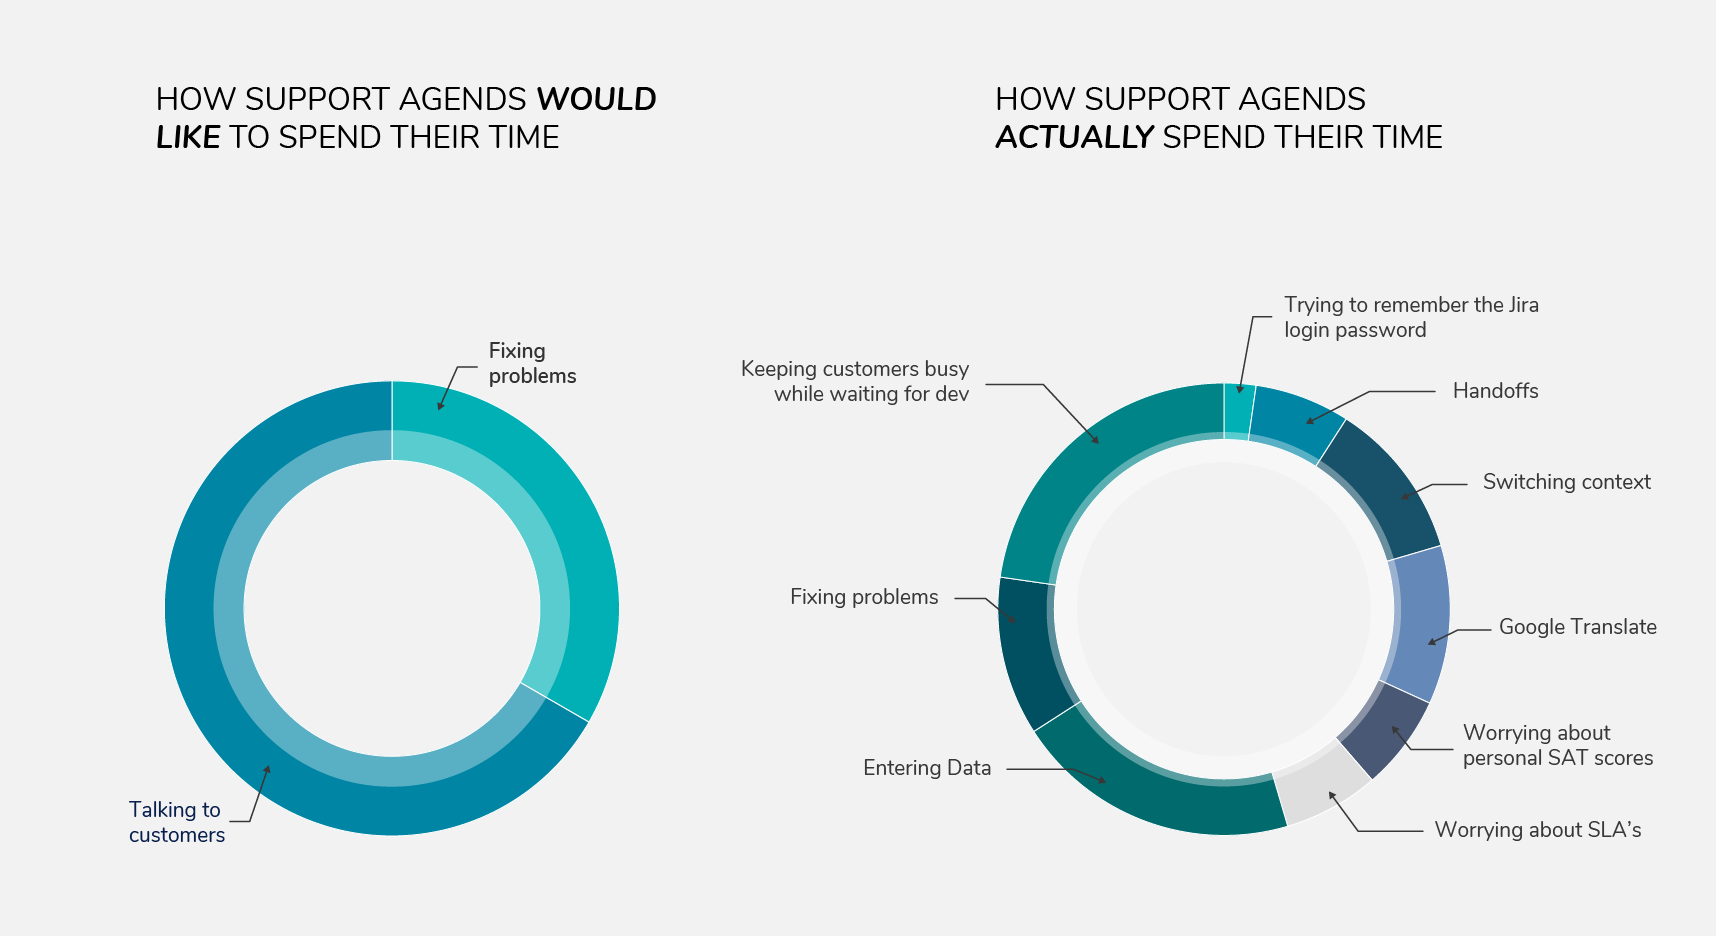 How support agents spend their time in distracting tasks